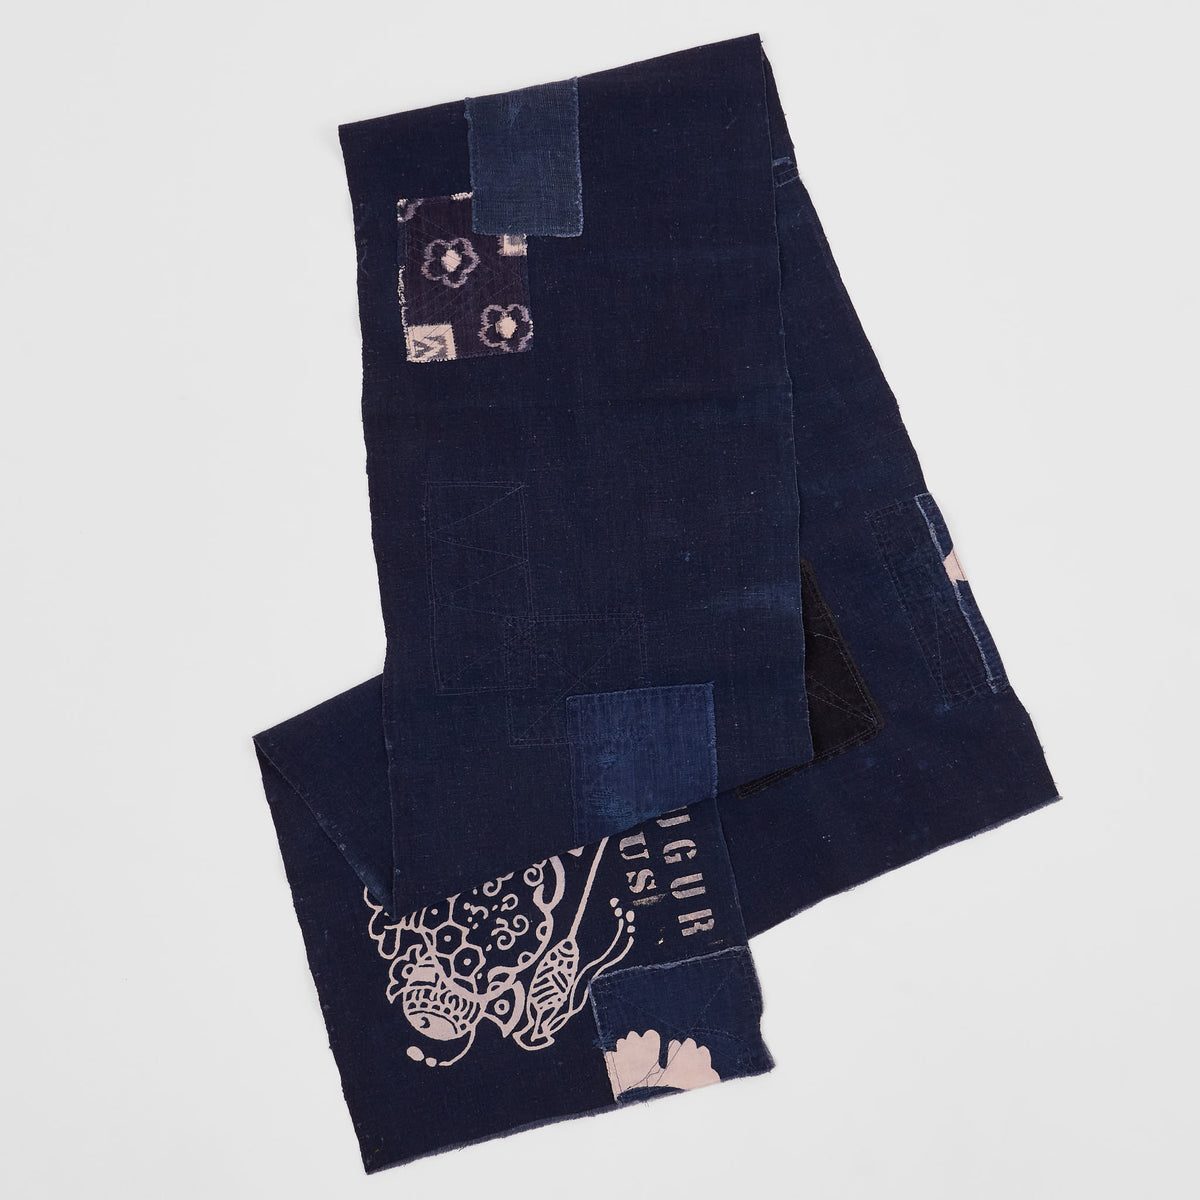 J. Augur Design Antique Japanese Indigo Boro Scarf